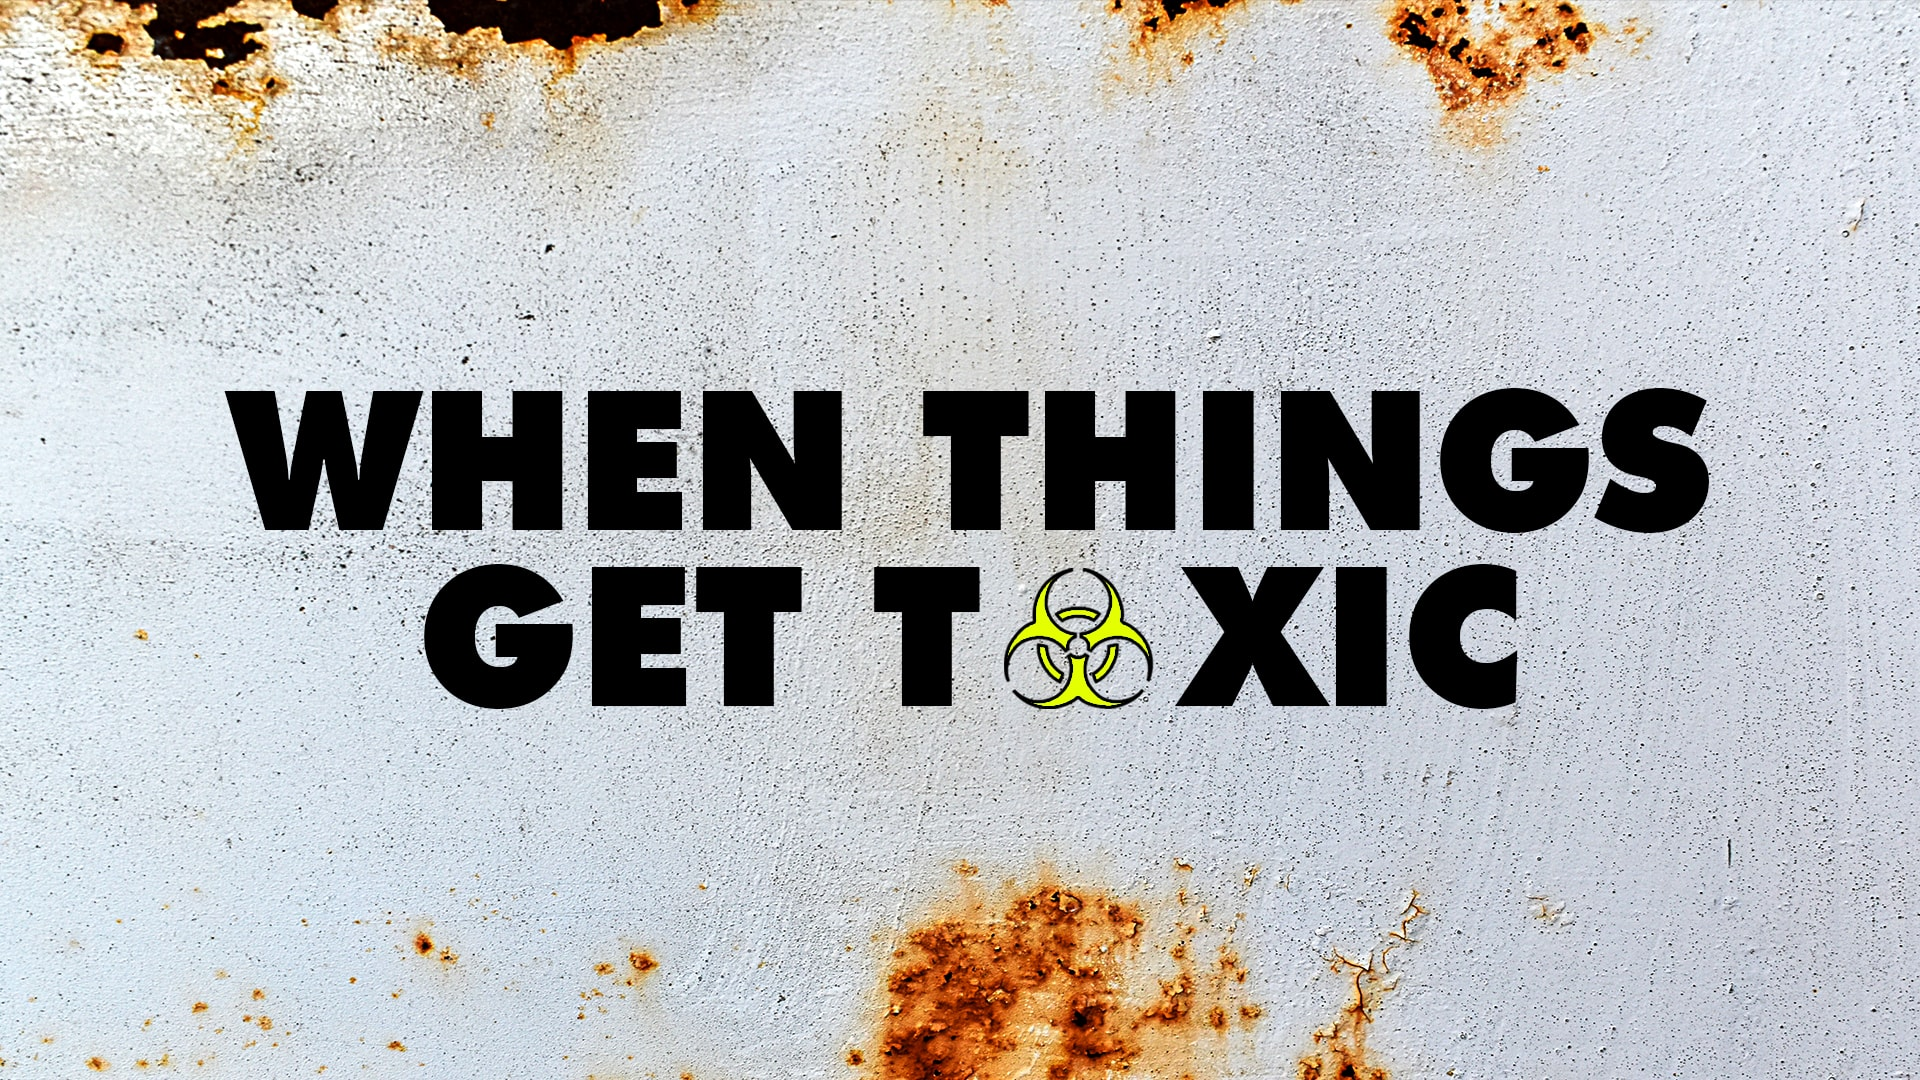 When Things Get Toxic